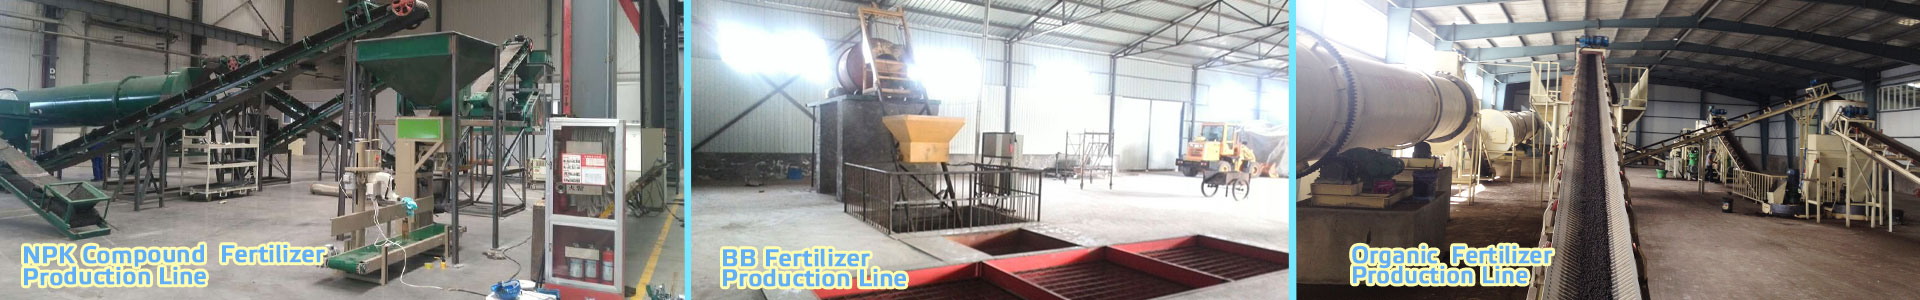 Fertilizer Production Line banner